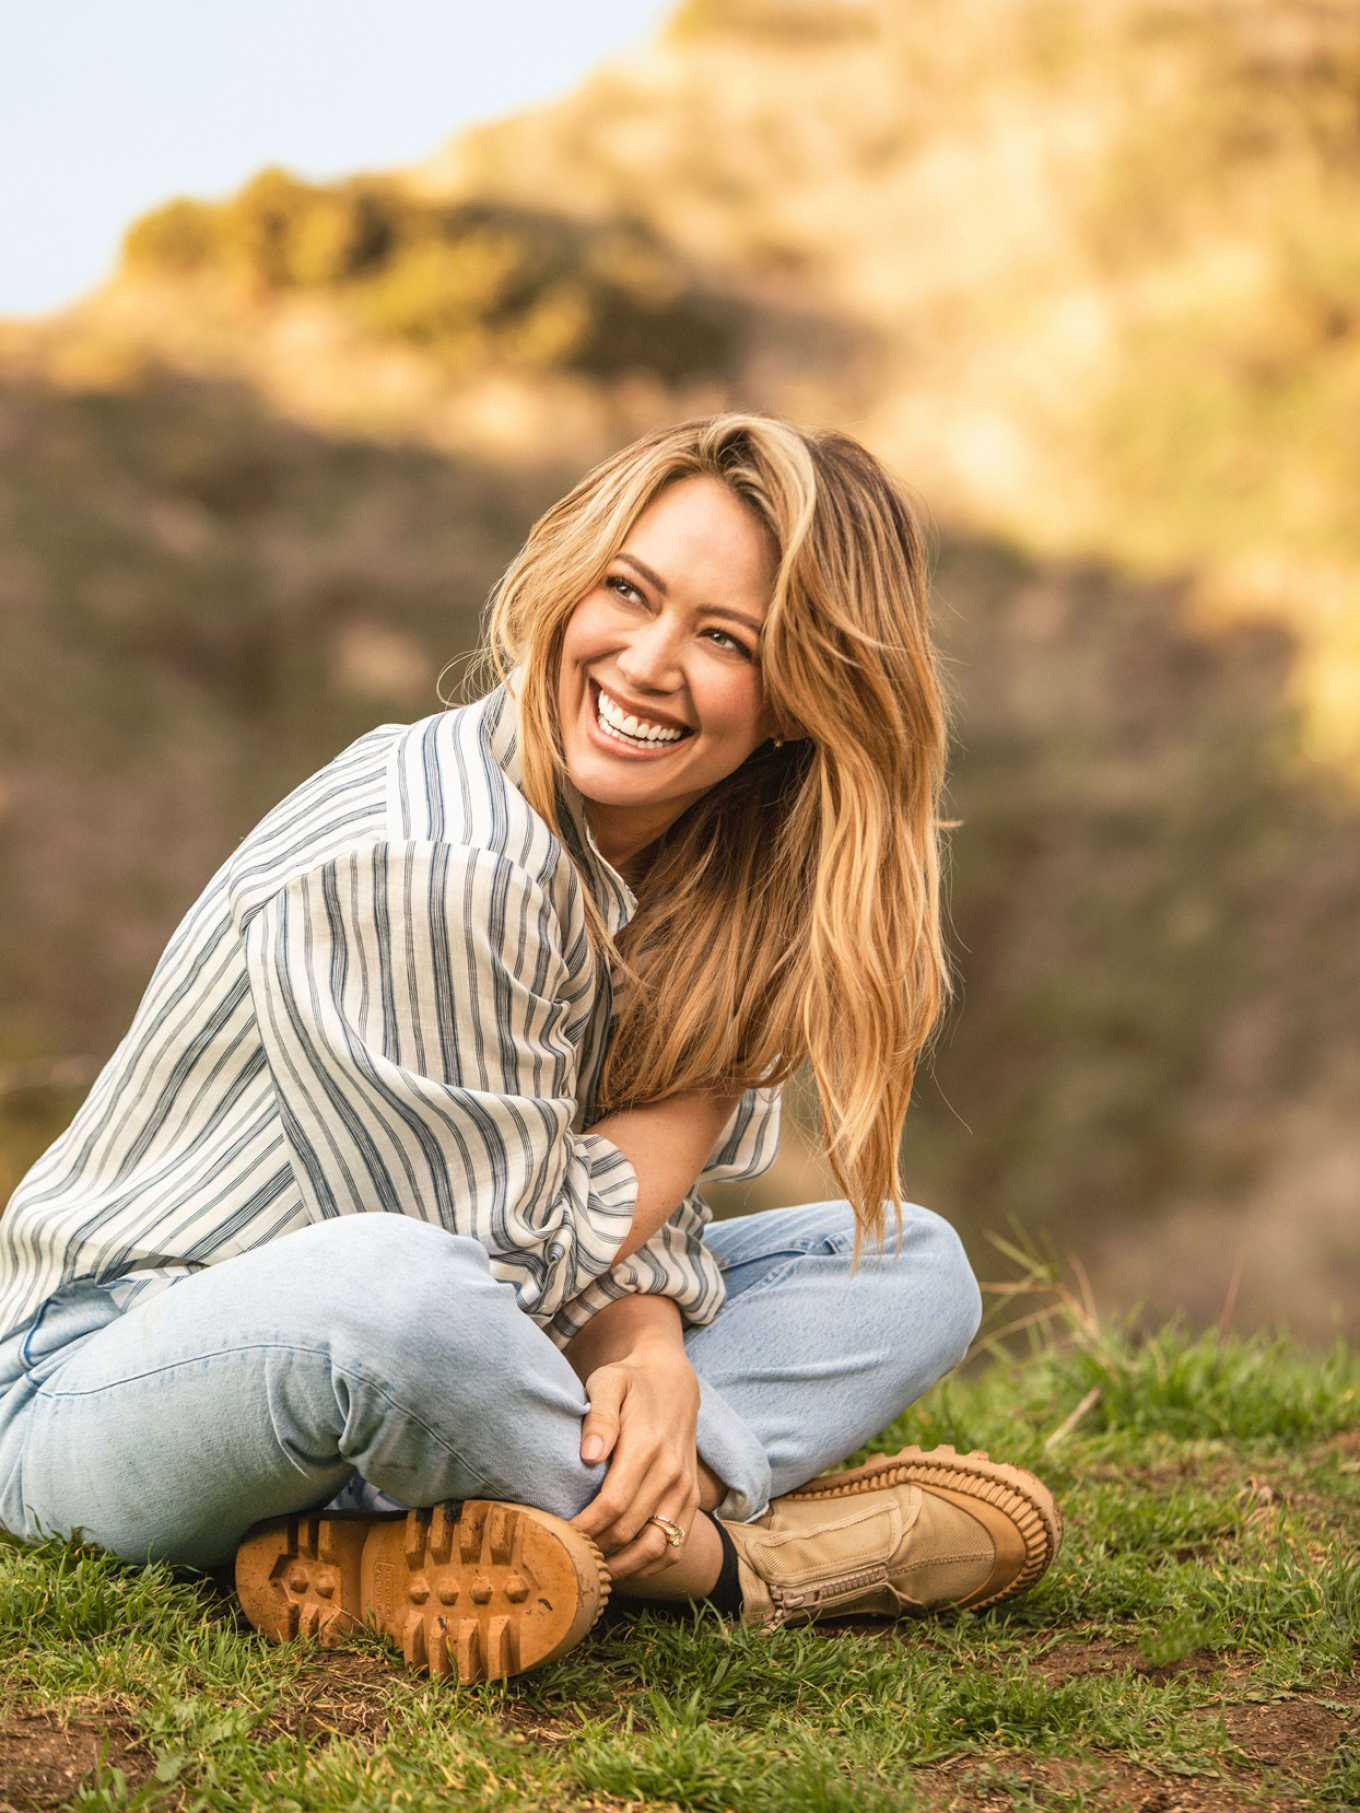 Hilary Duff by Silja Magg for Parents Magazine (April 2020)